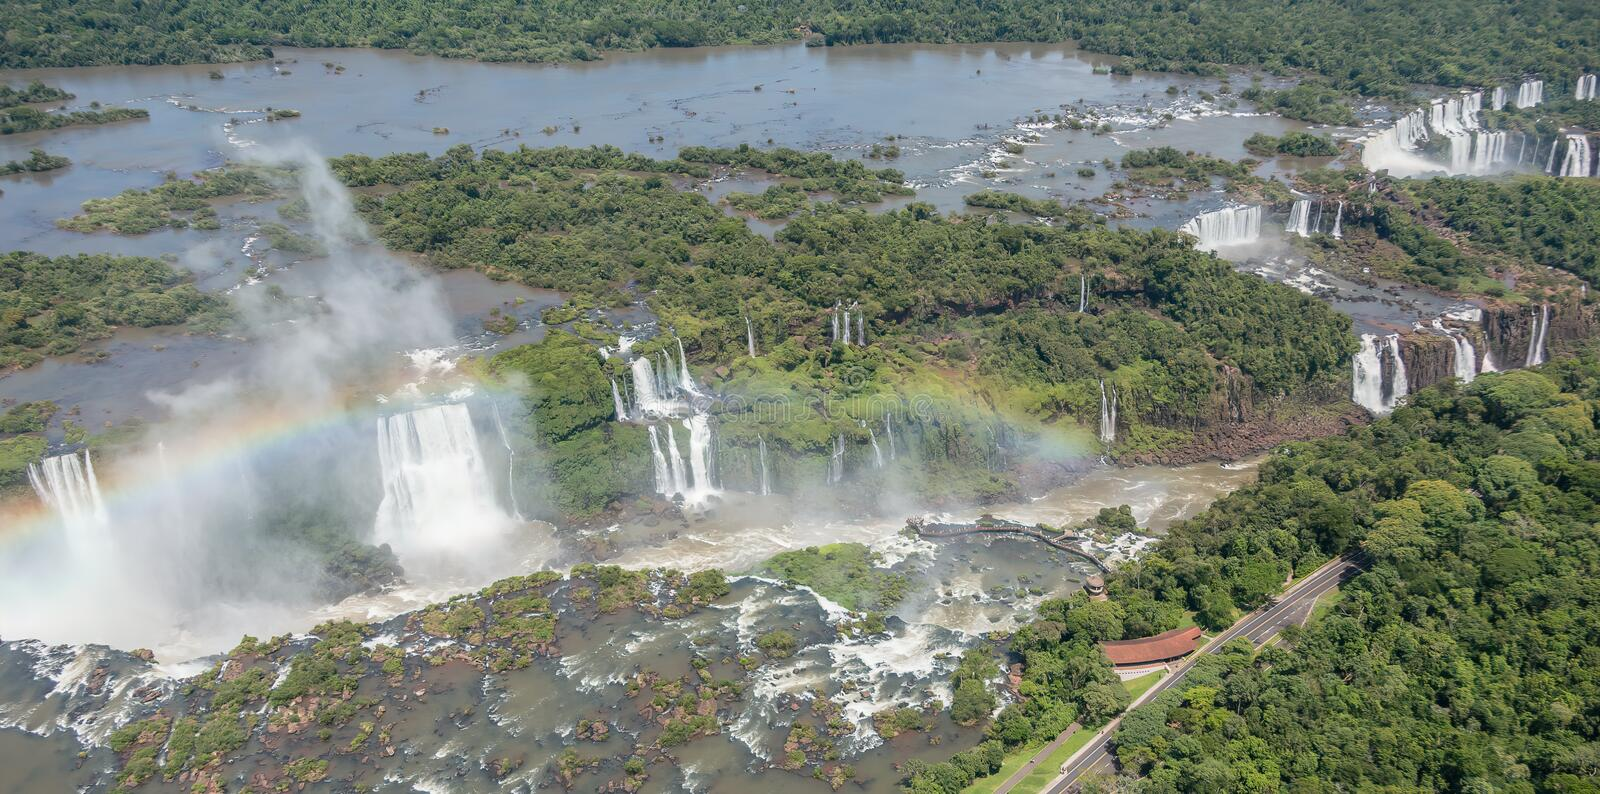 Aerial view showing entire Iguassu Falls from the air on  the Brazil side. Helicopter view of the waterfalls at Iguassu in South America  Rainbow and stock photos